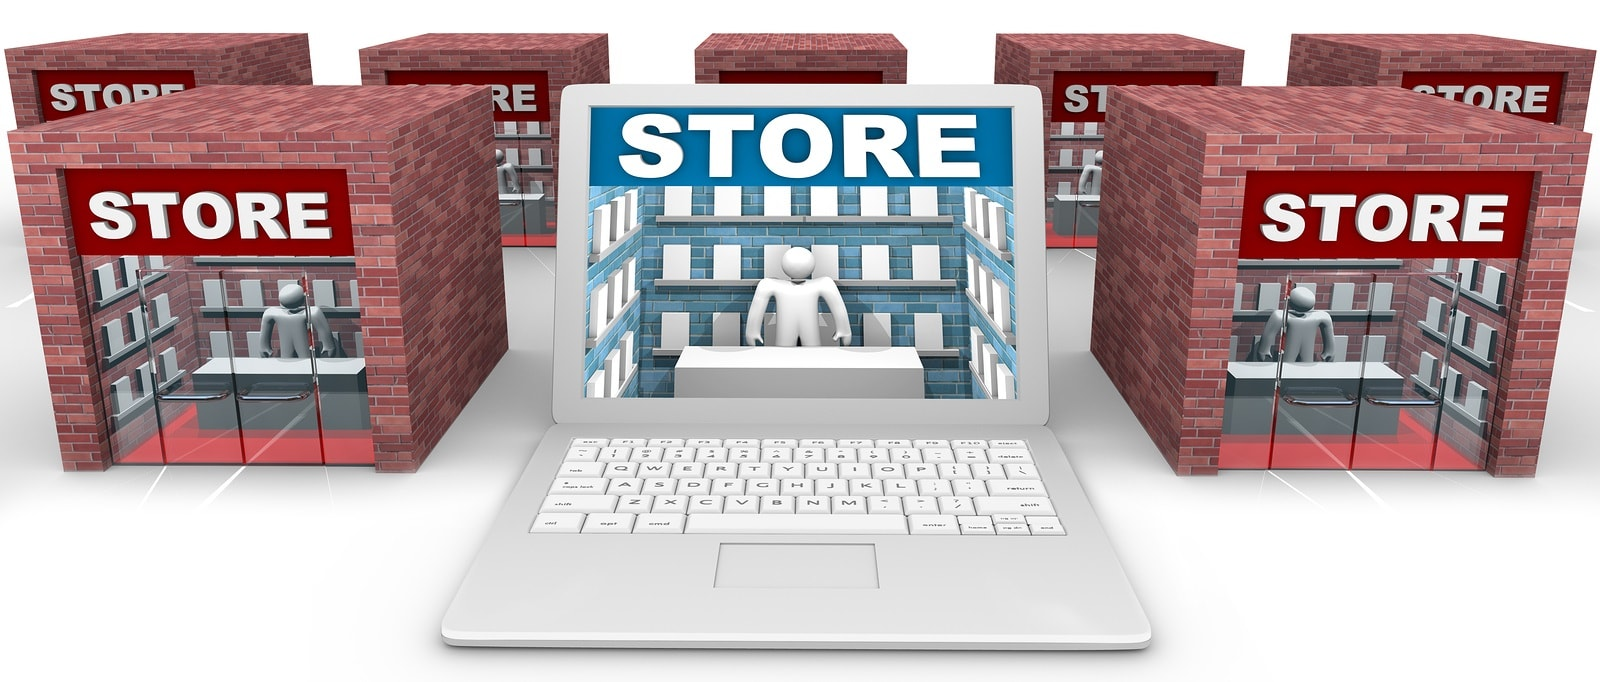 In Shop Online Store Retail Real Estate Integrating Online In Store Shopping